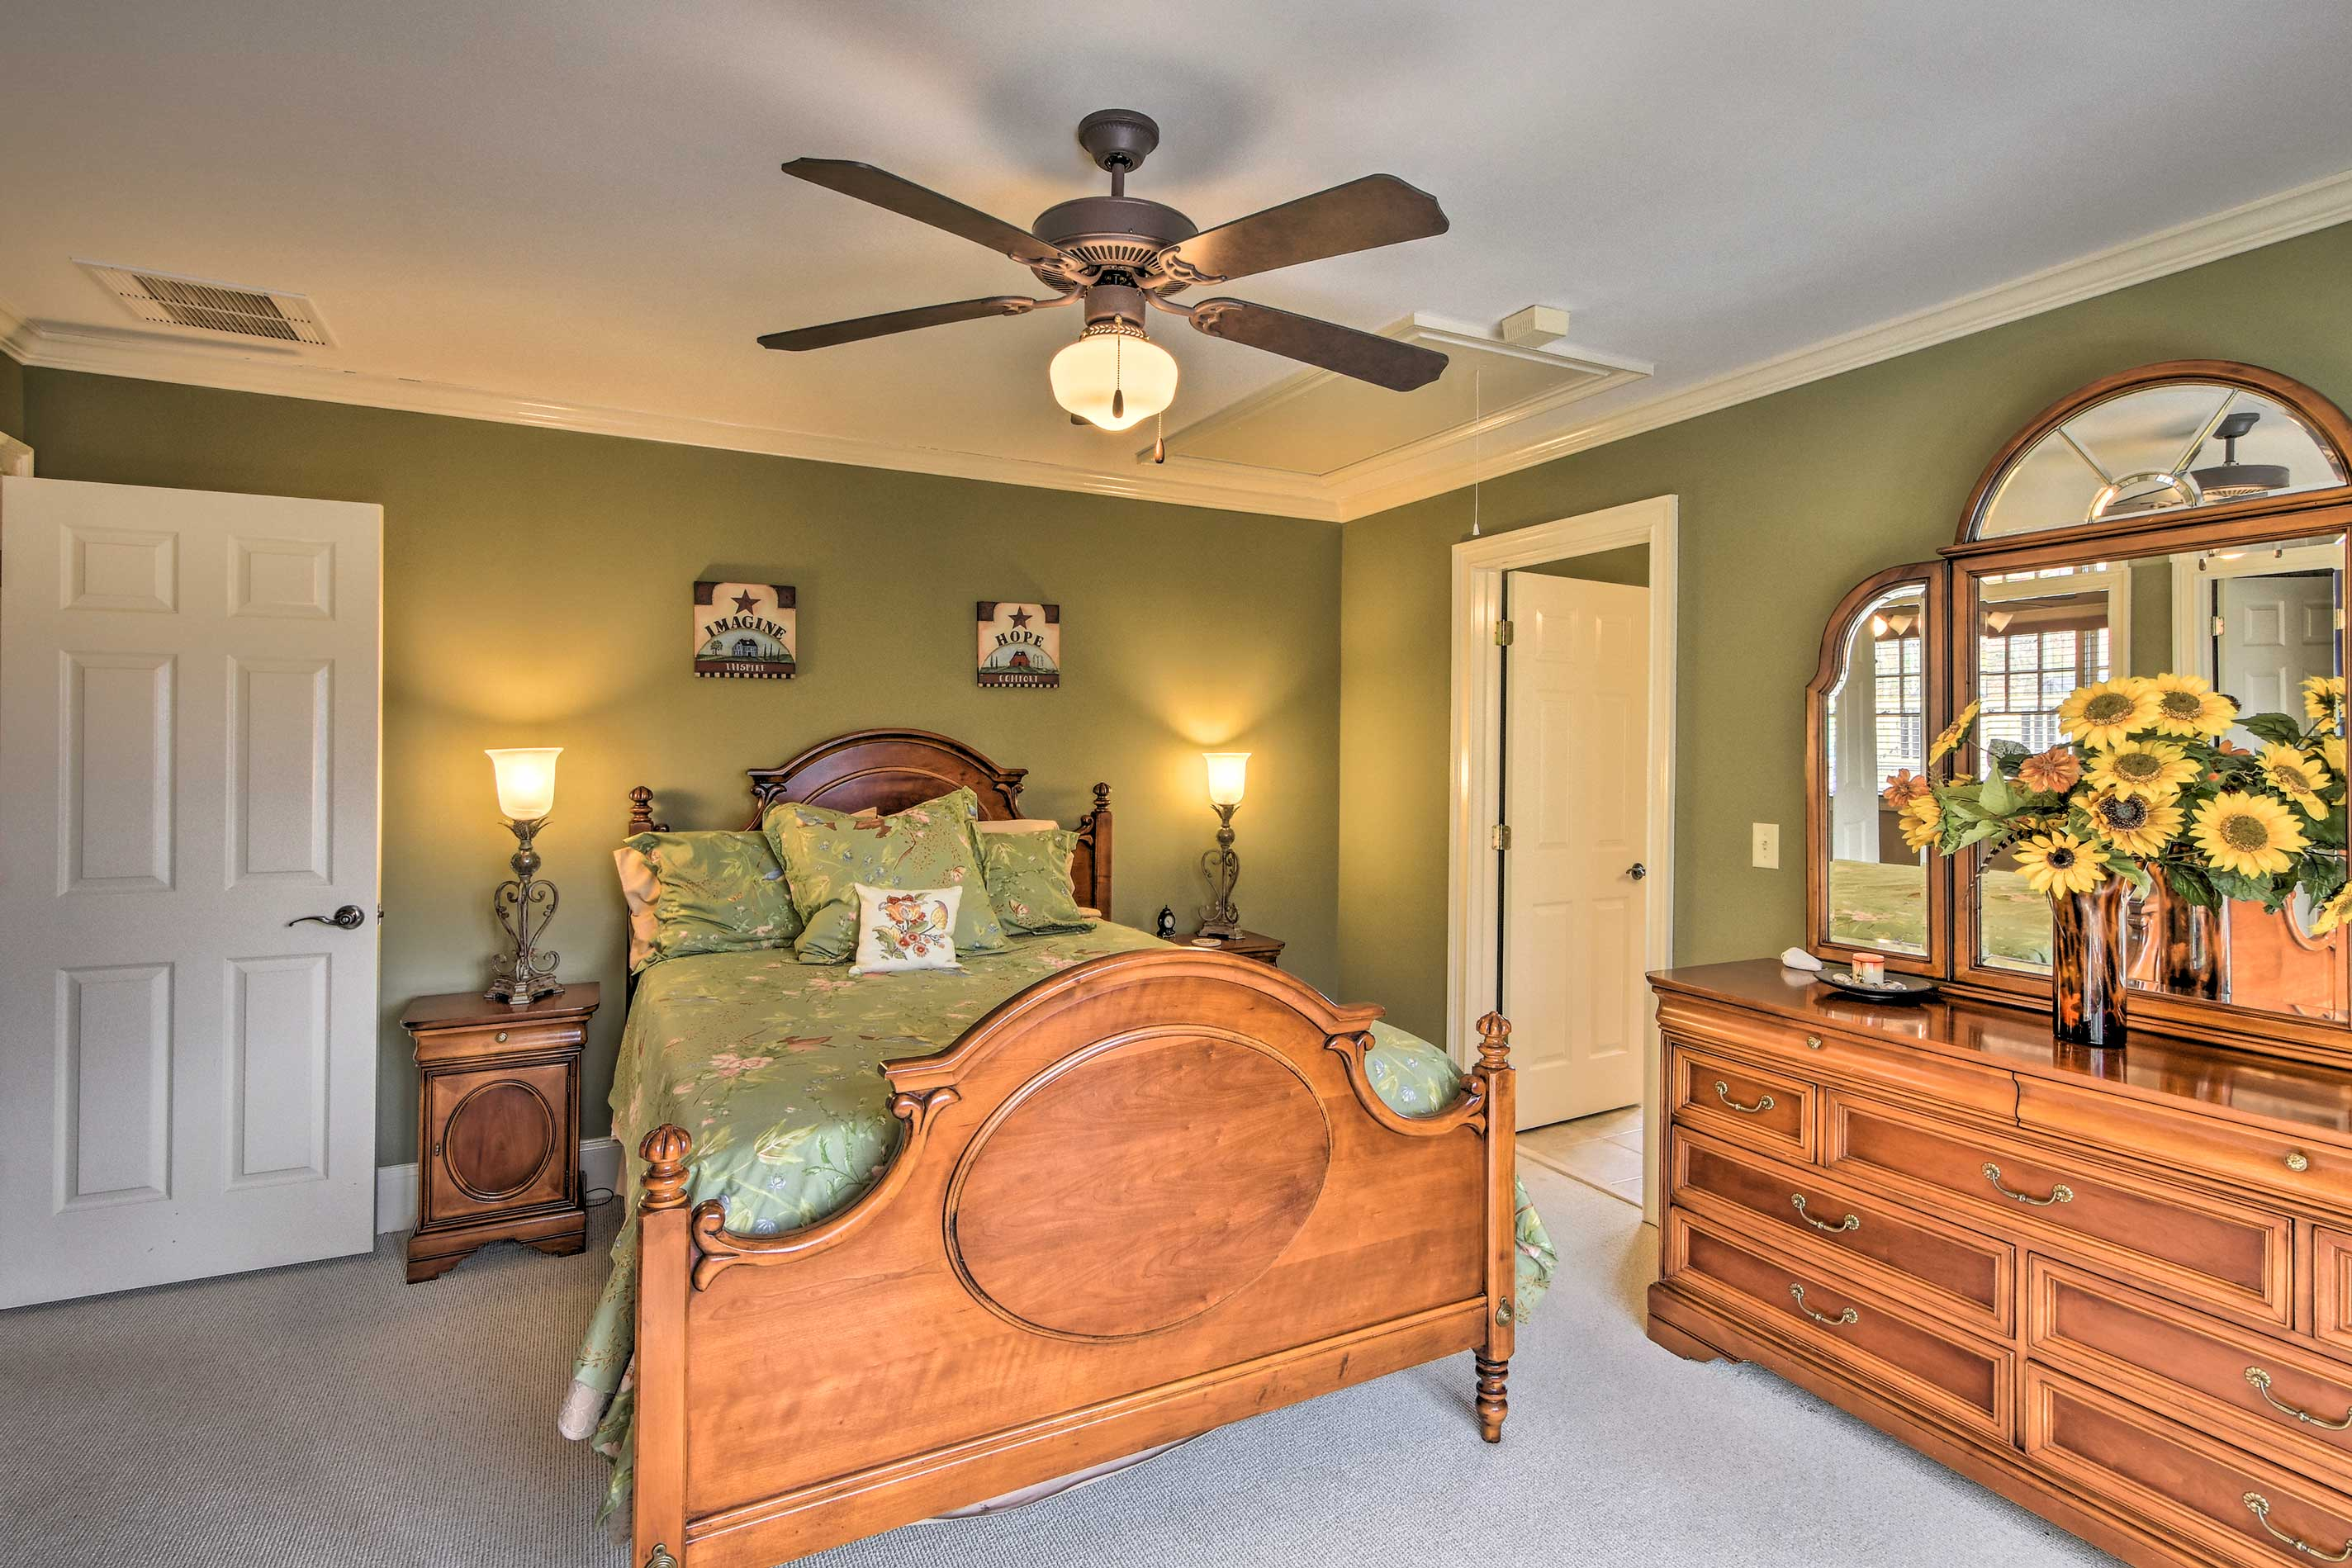 Two of the bedrooms feature queen beds.